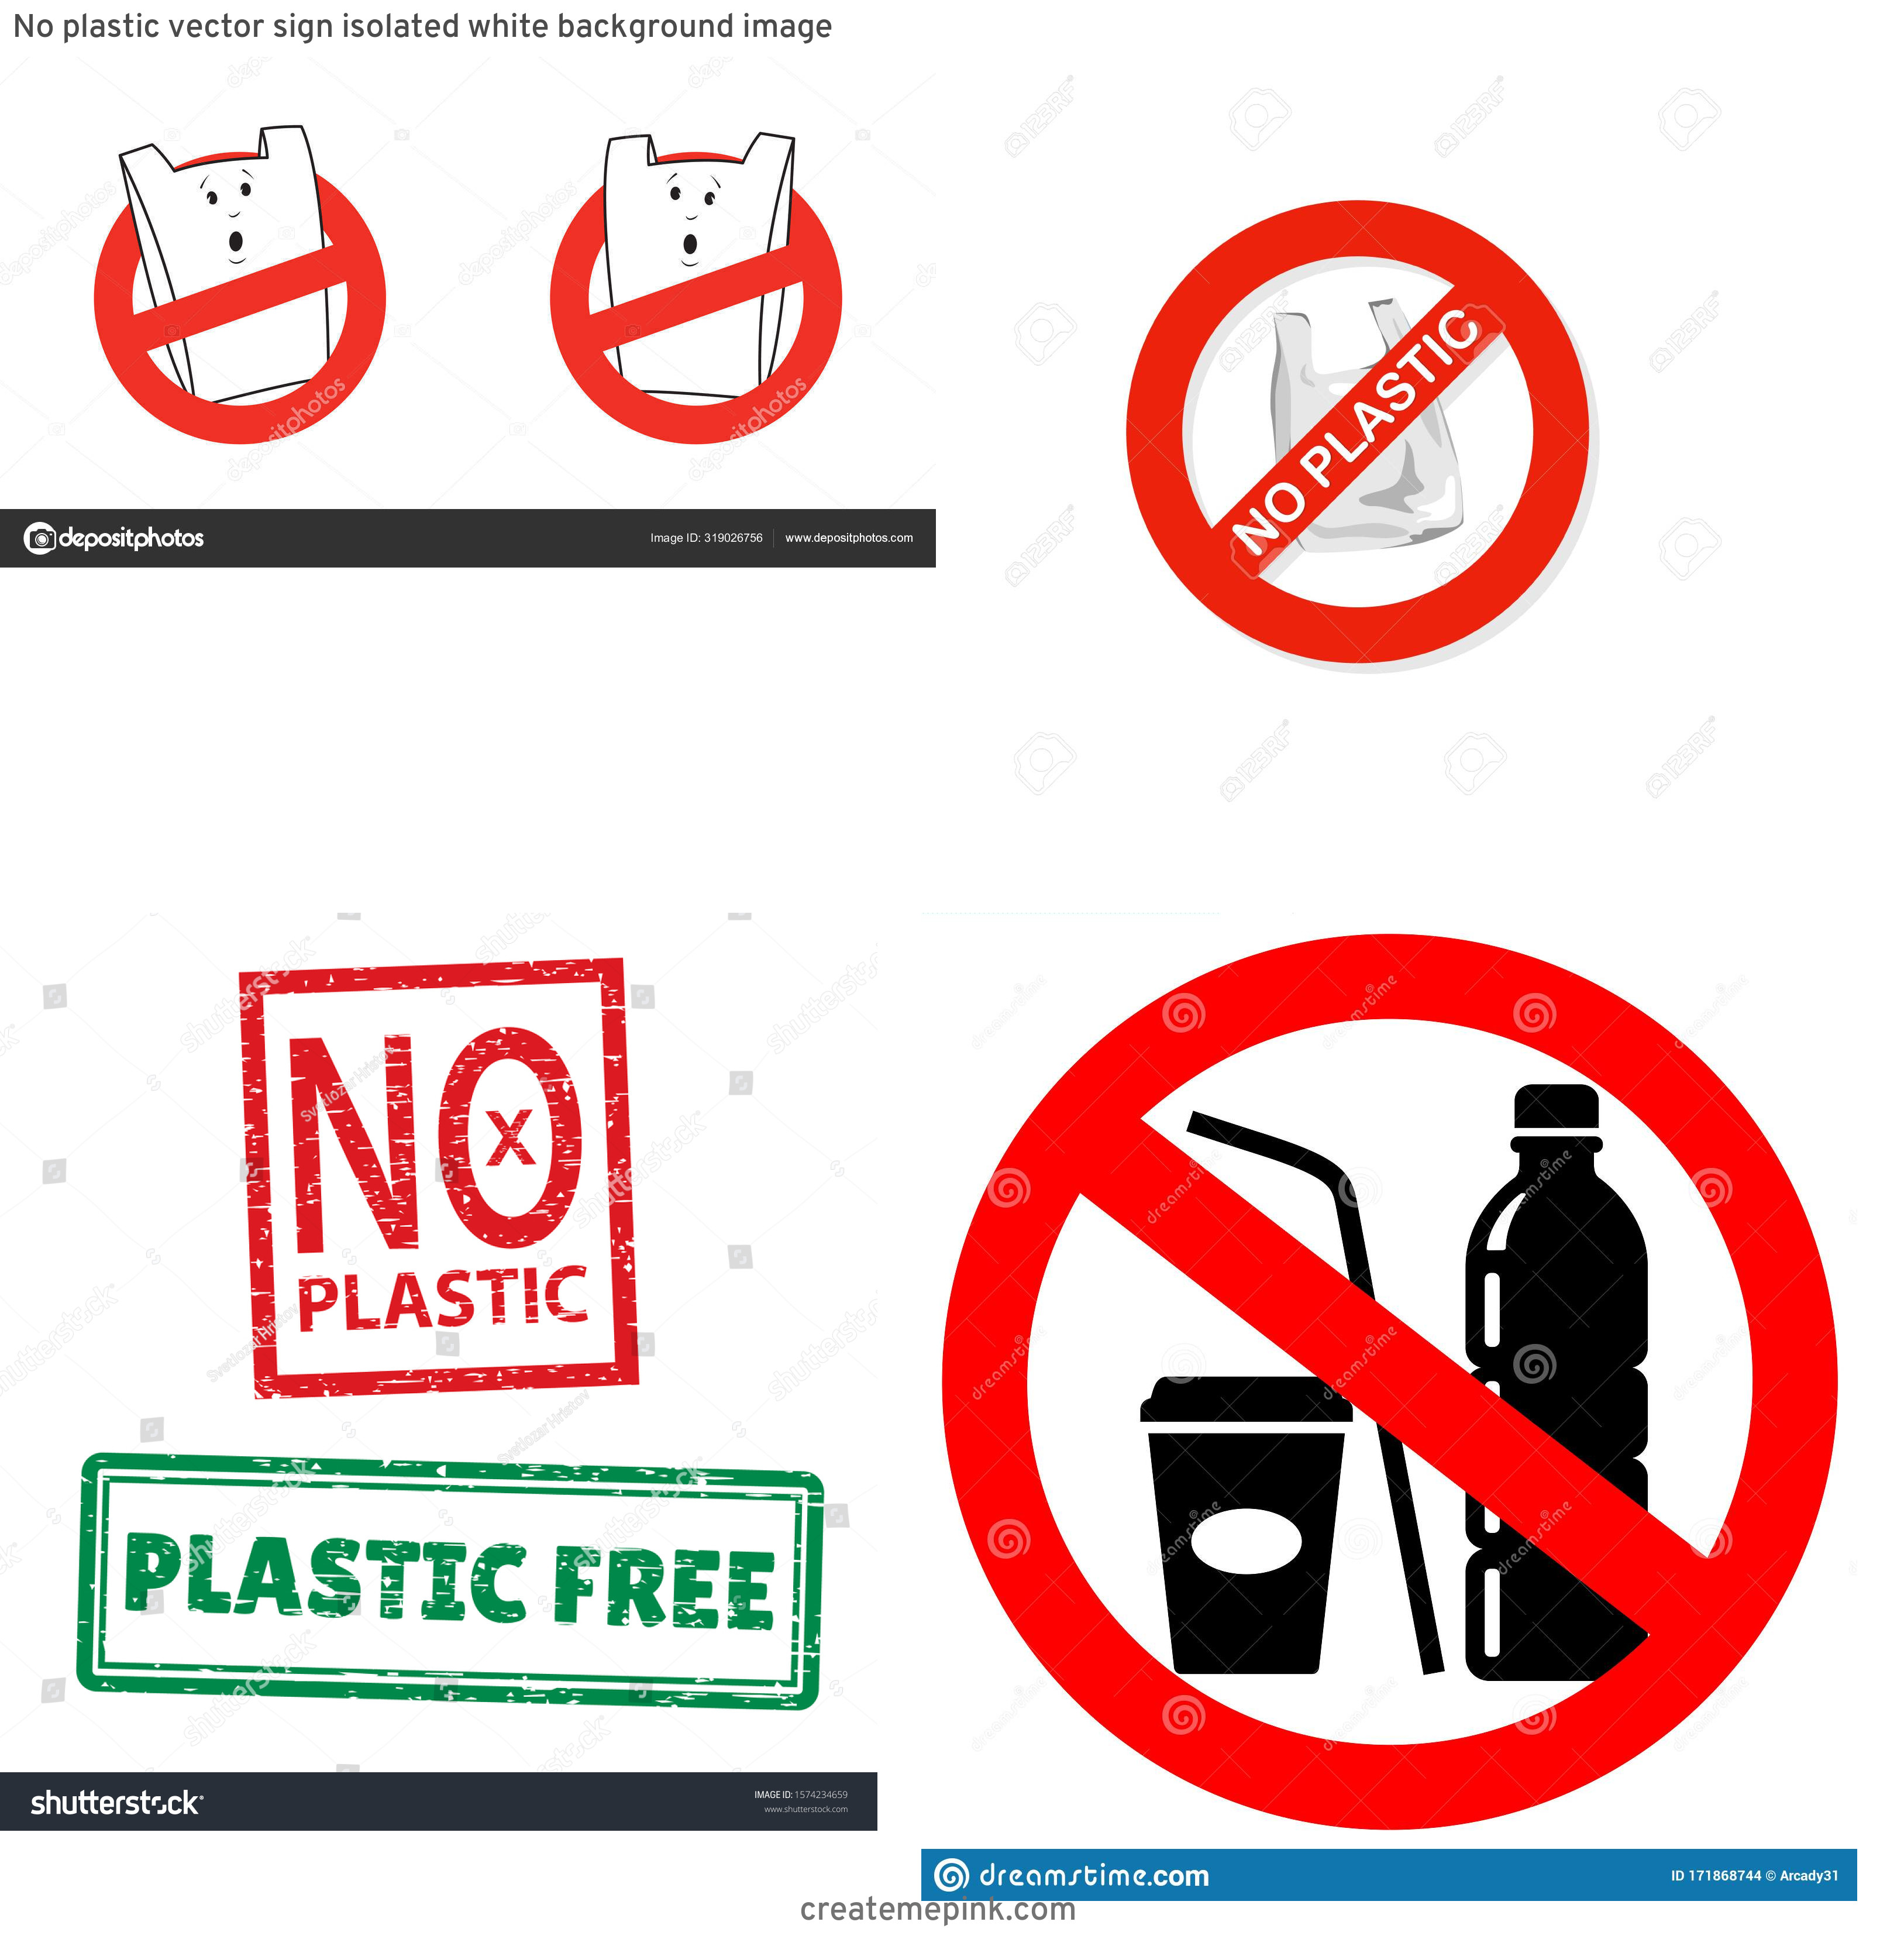 Vector No Plastic: No Plastic Vector Sign Isolated White Background Image